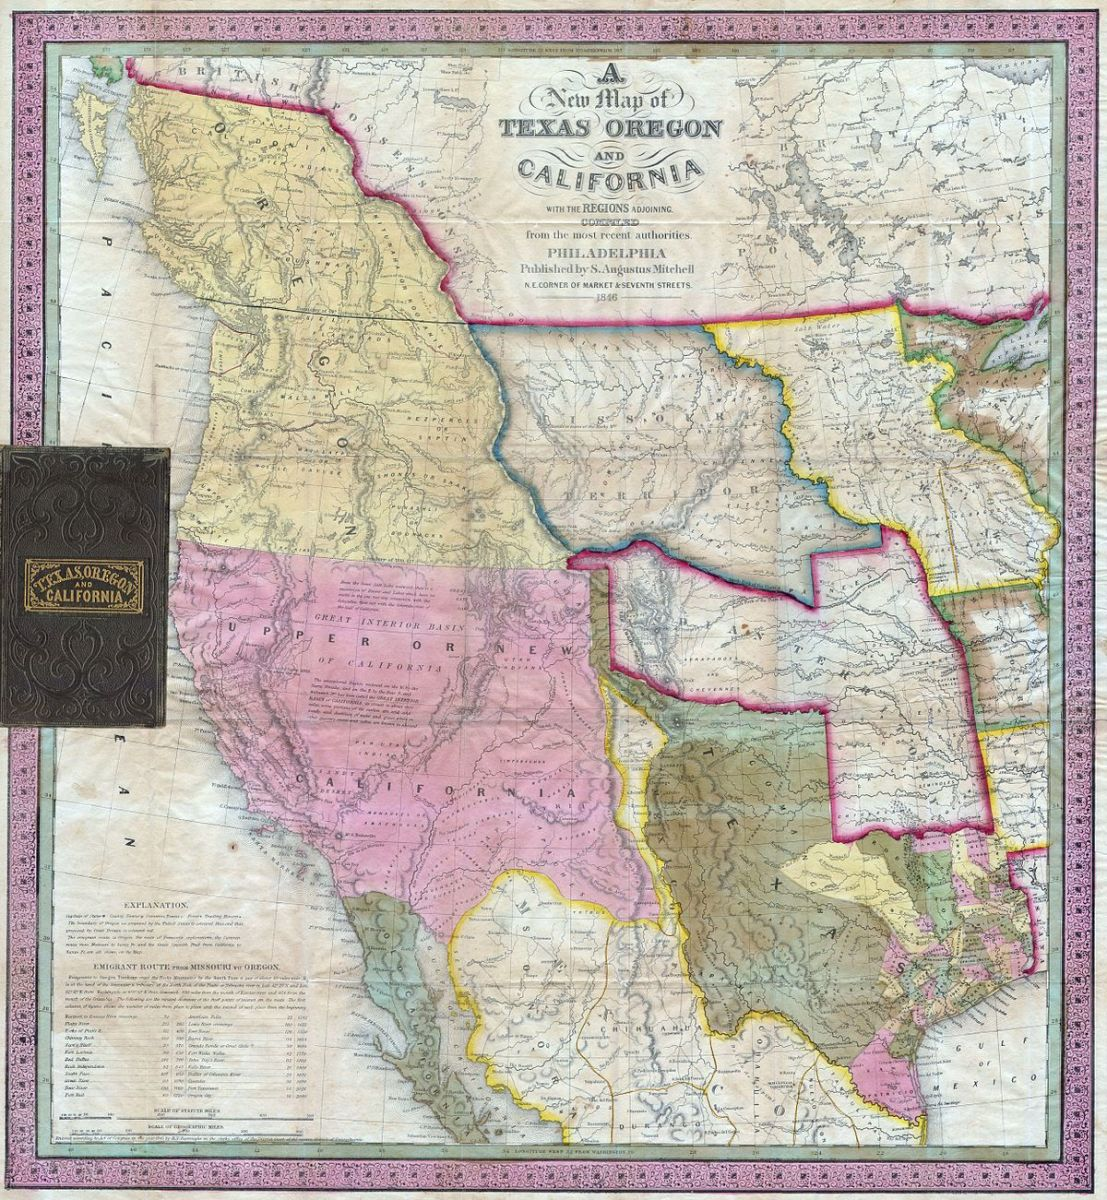 The Colonization of California - France, Prussia, Russia, and England